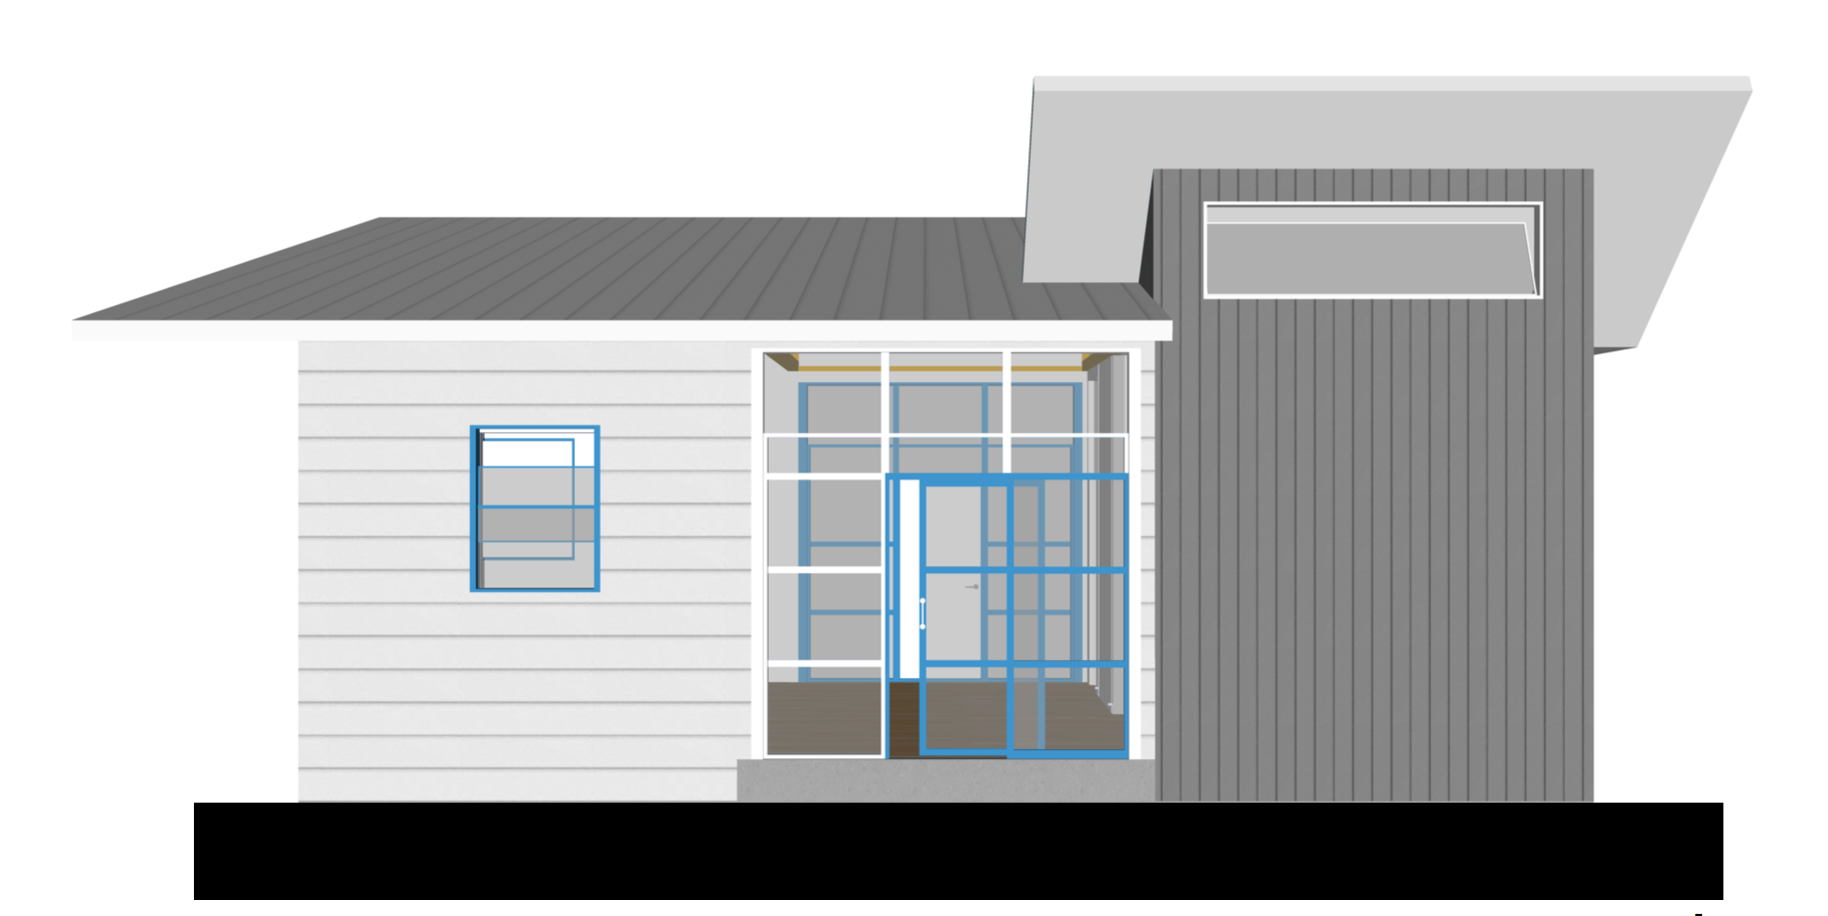 Accessory Dwelling Unit Elevation.png